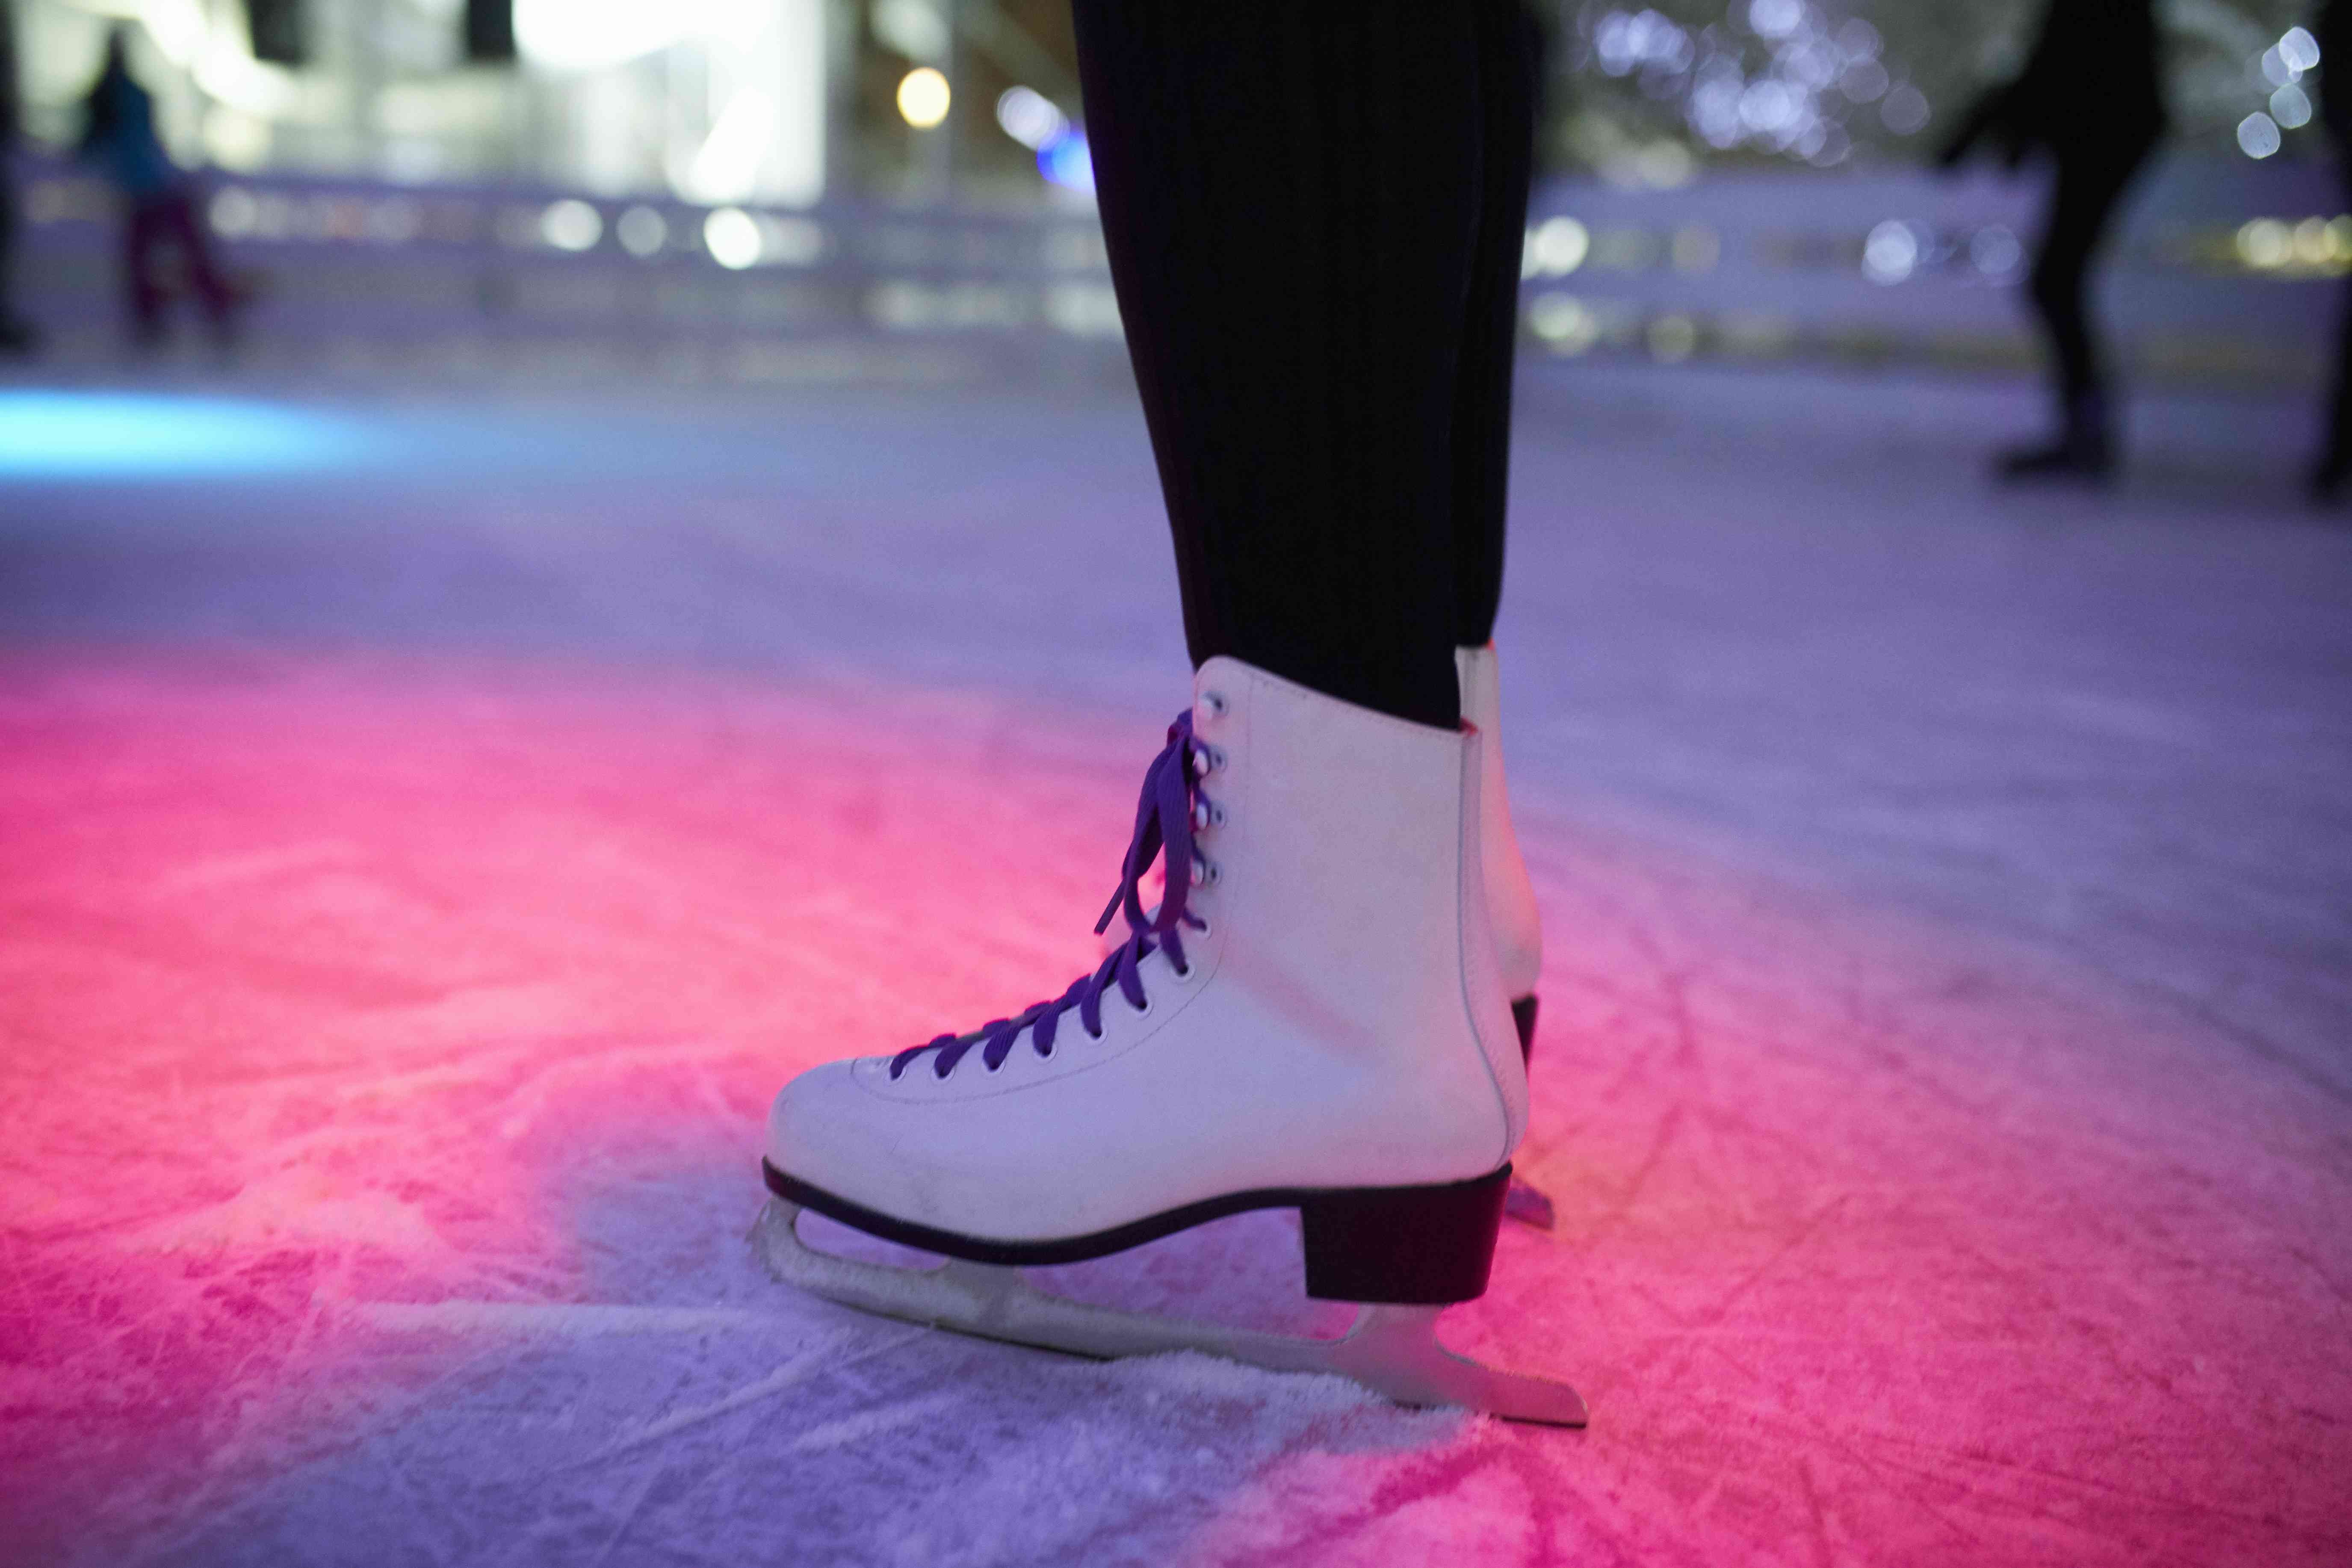 Leg of woman wearing ice skates standing on an ice rink